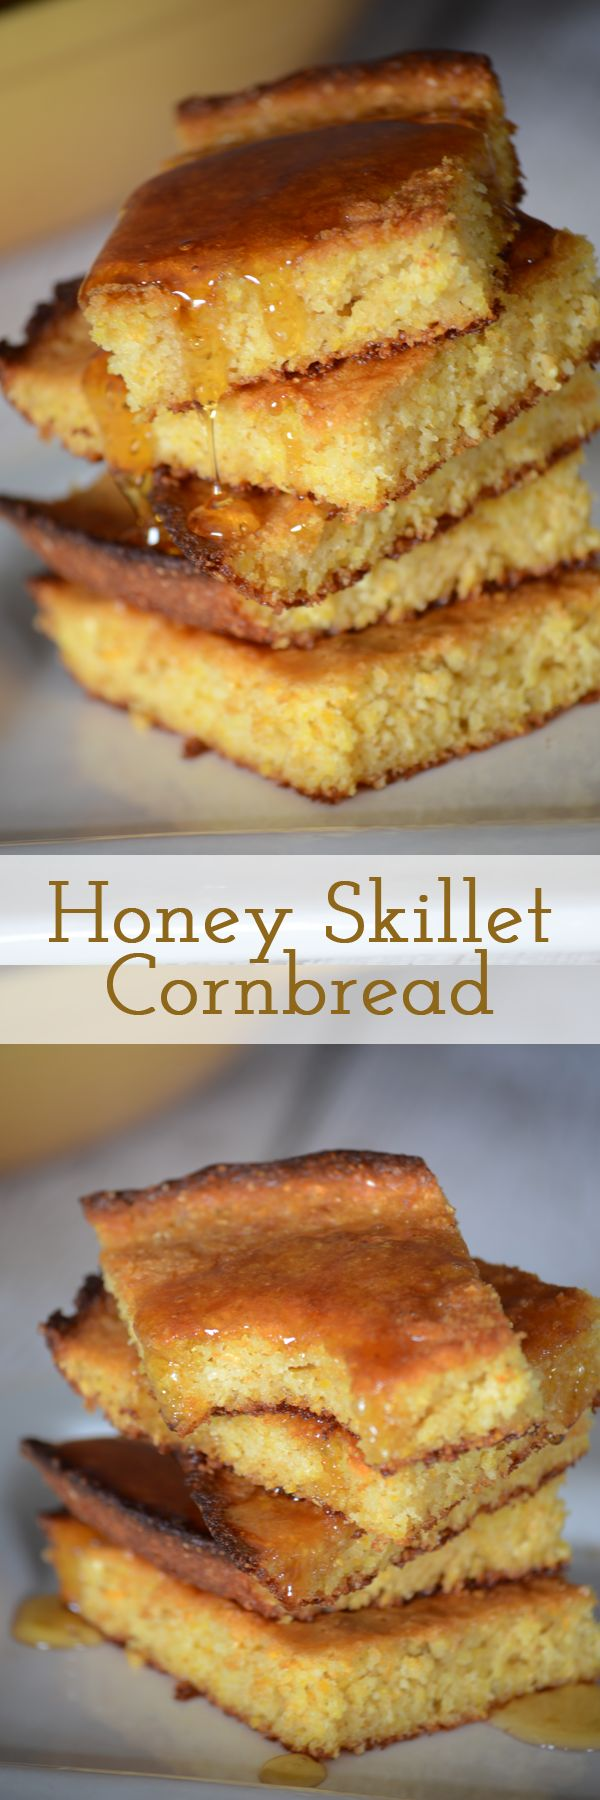 ... Skillet Cornbread | Recipe | Skillet Cornbread, Cornbread and Skillets